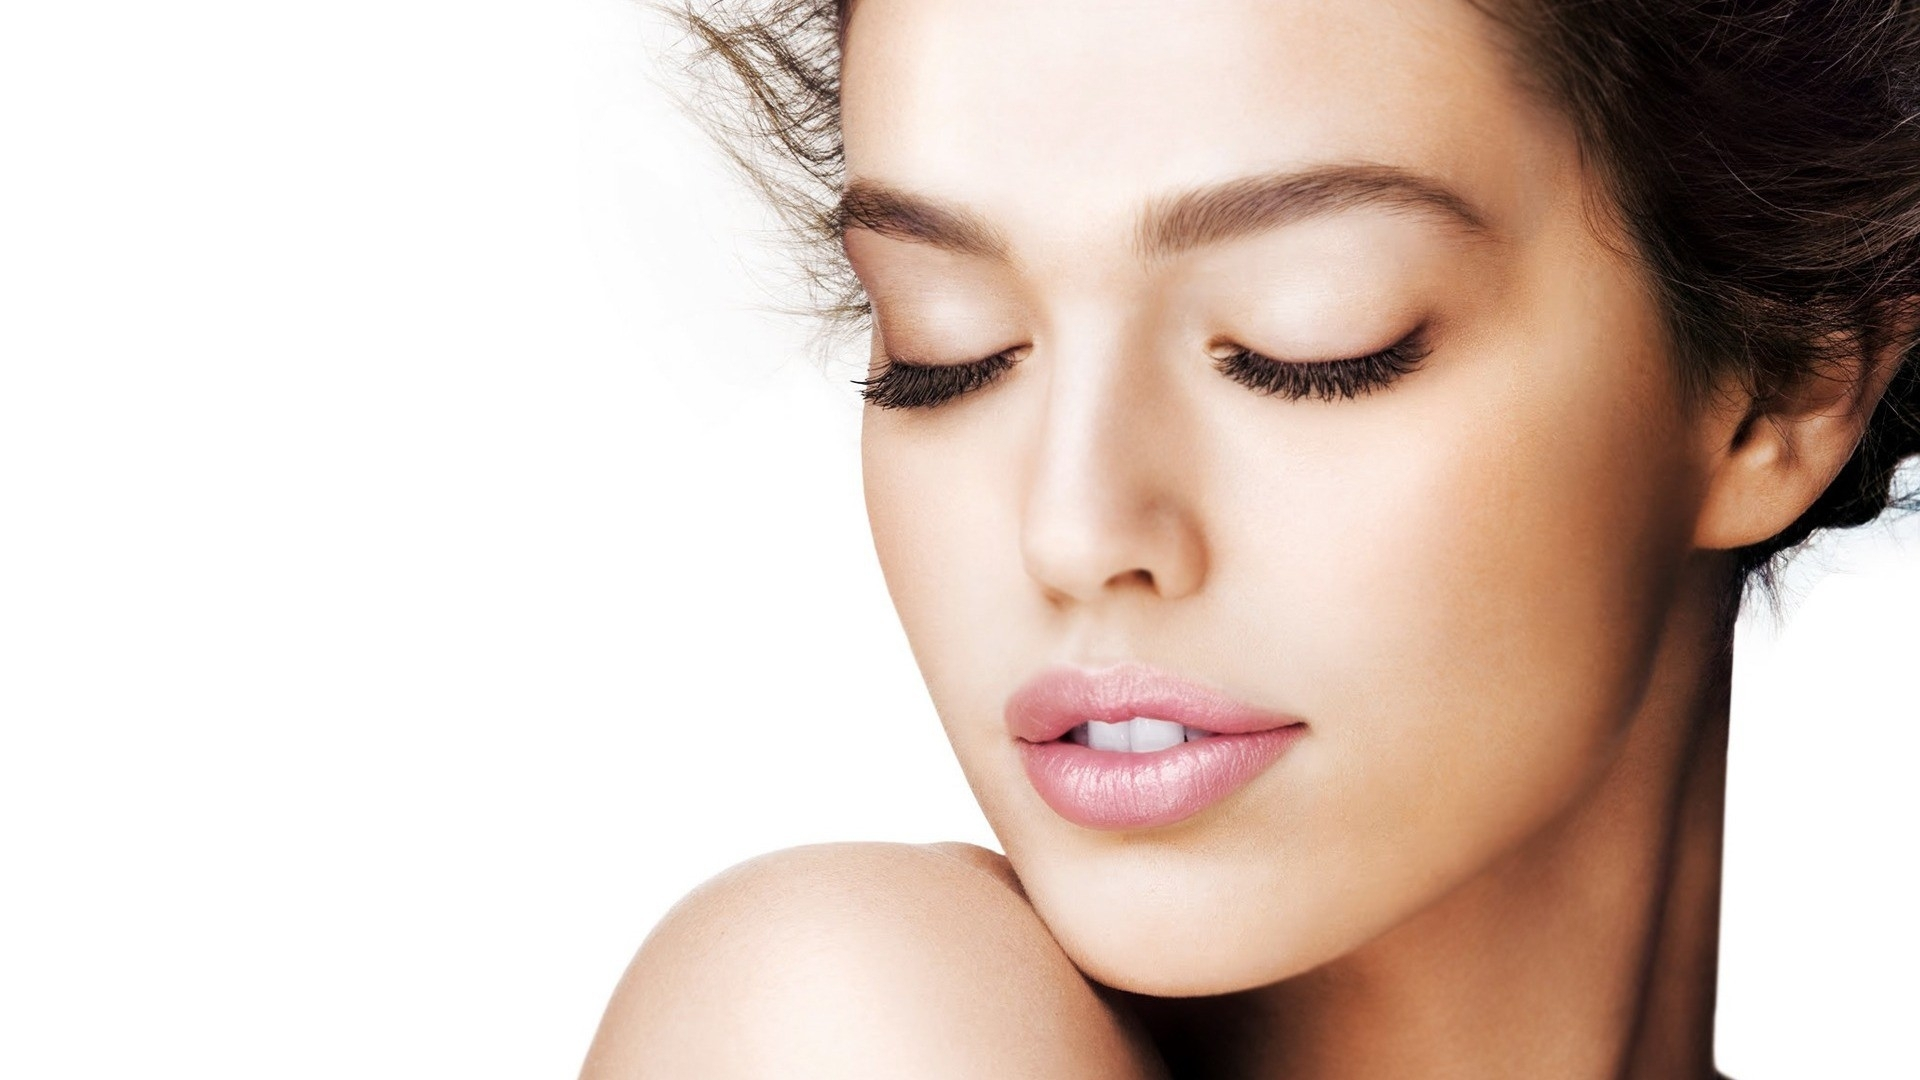 Women's Health and Aesthetic medicine. Dr Ria Smit Aesthetics is located in Paarl, offers Botox, Acne Treatment, Dermal Fillers, Skin Renewal, Woman's Health, Aesthetic Consultation